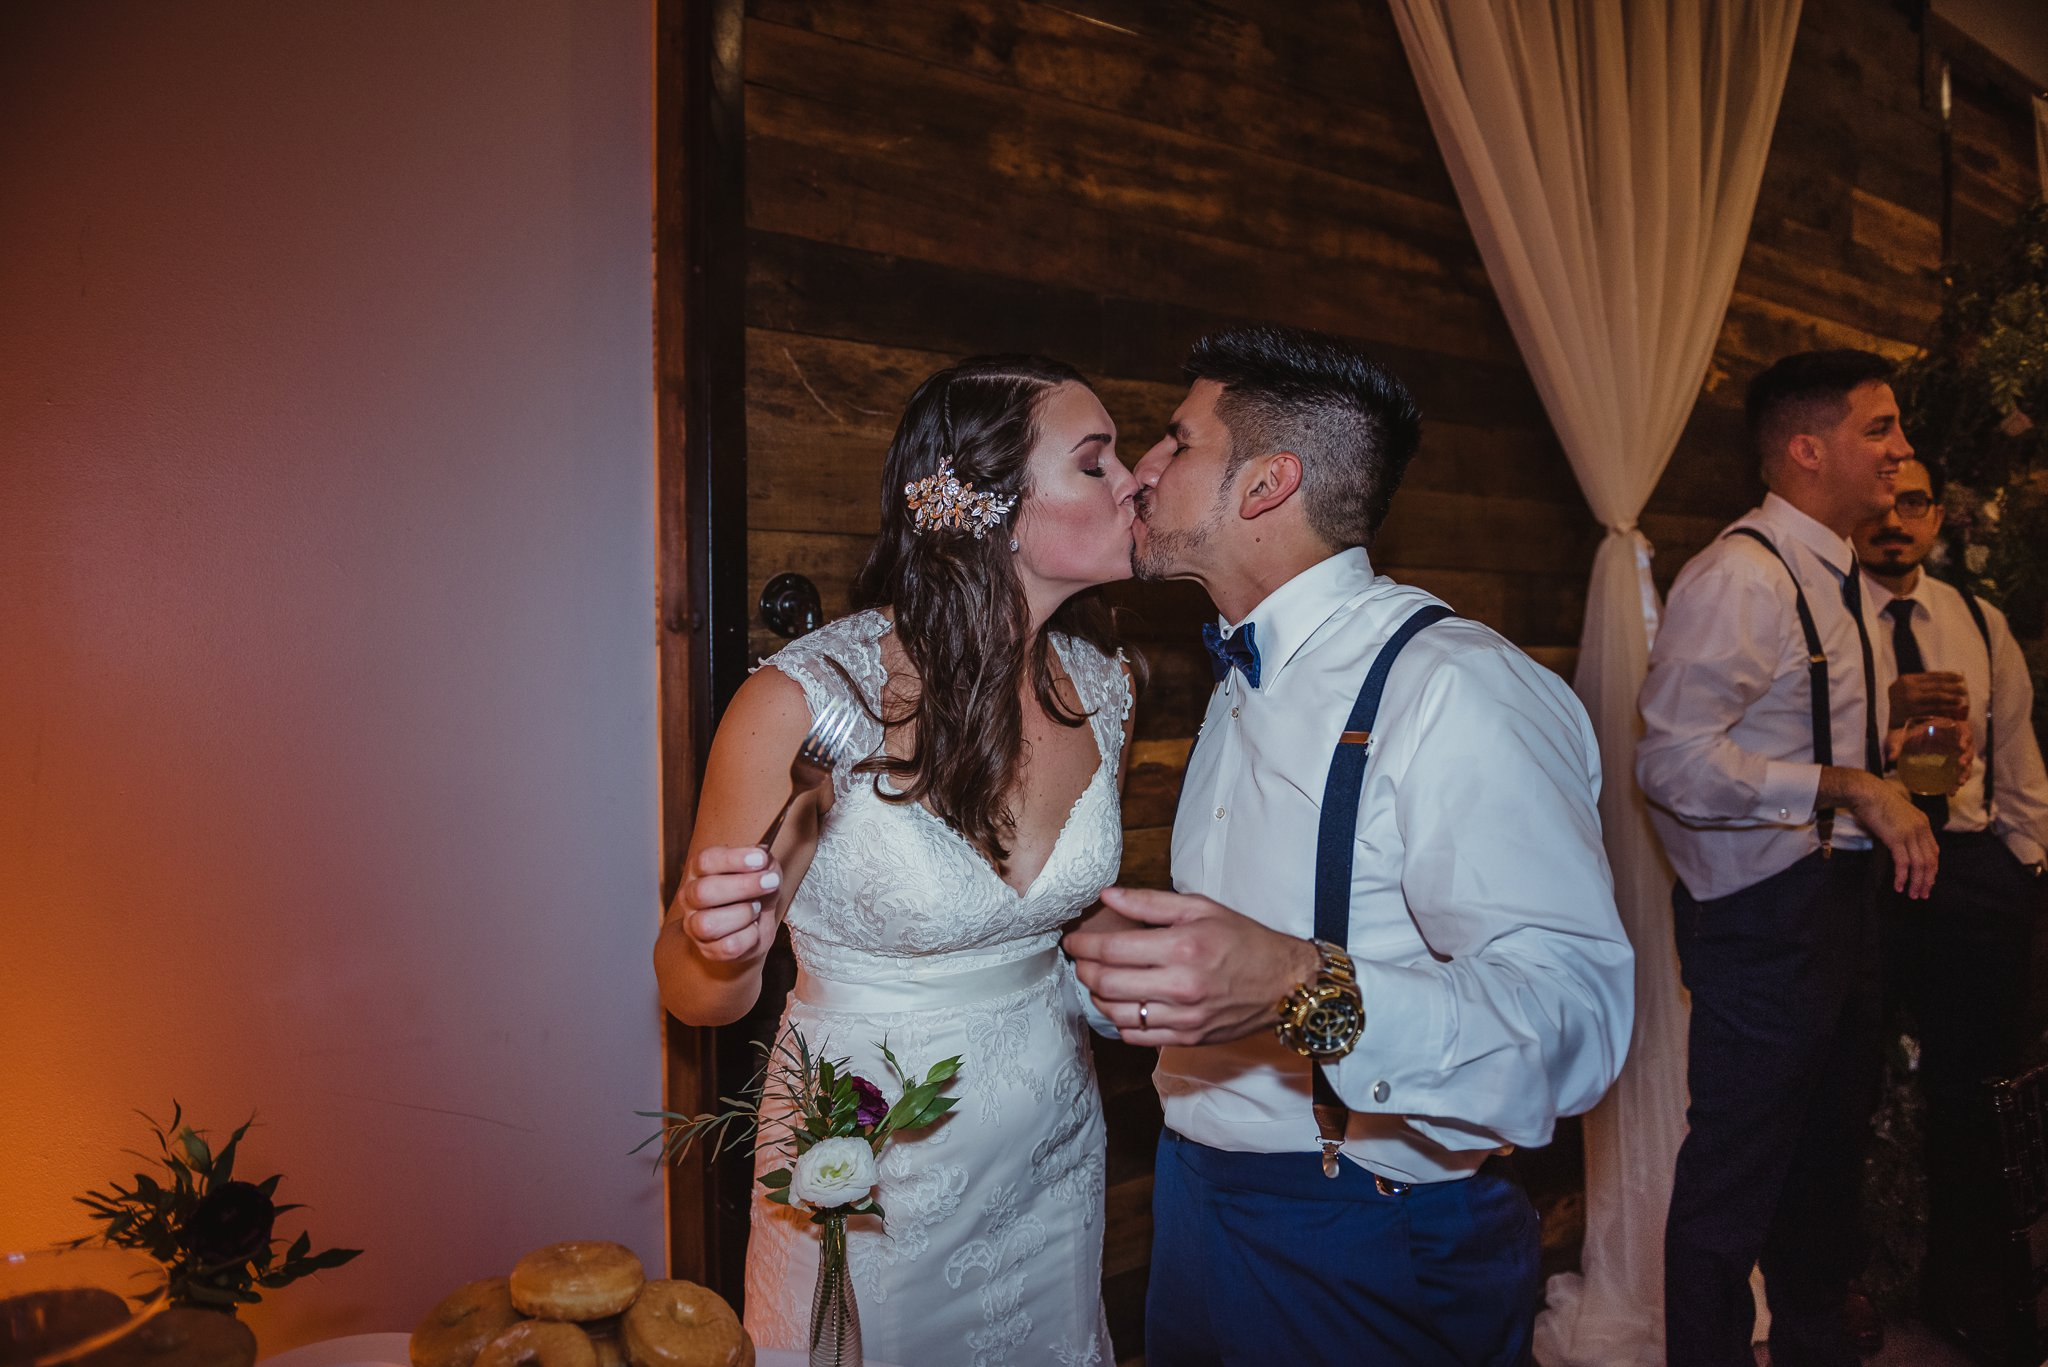 The bride and groom kissed after eating their cake at their wedding reception at Market Hall in downtown Raleigh, photos by Rose Trail Images.